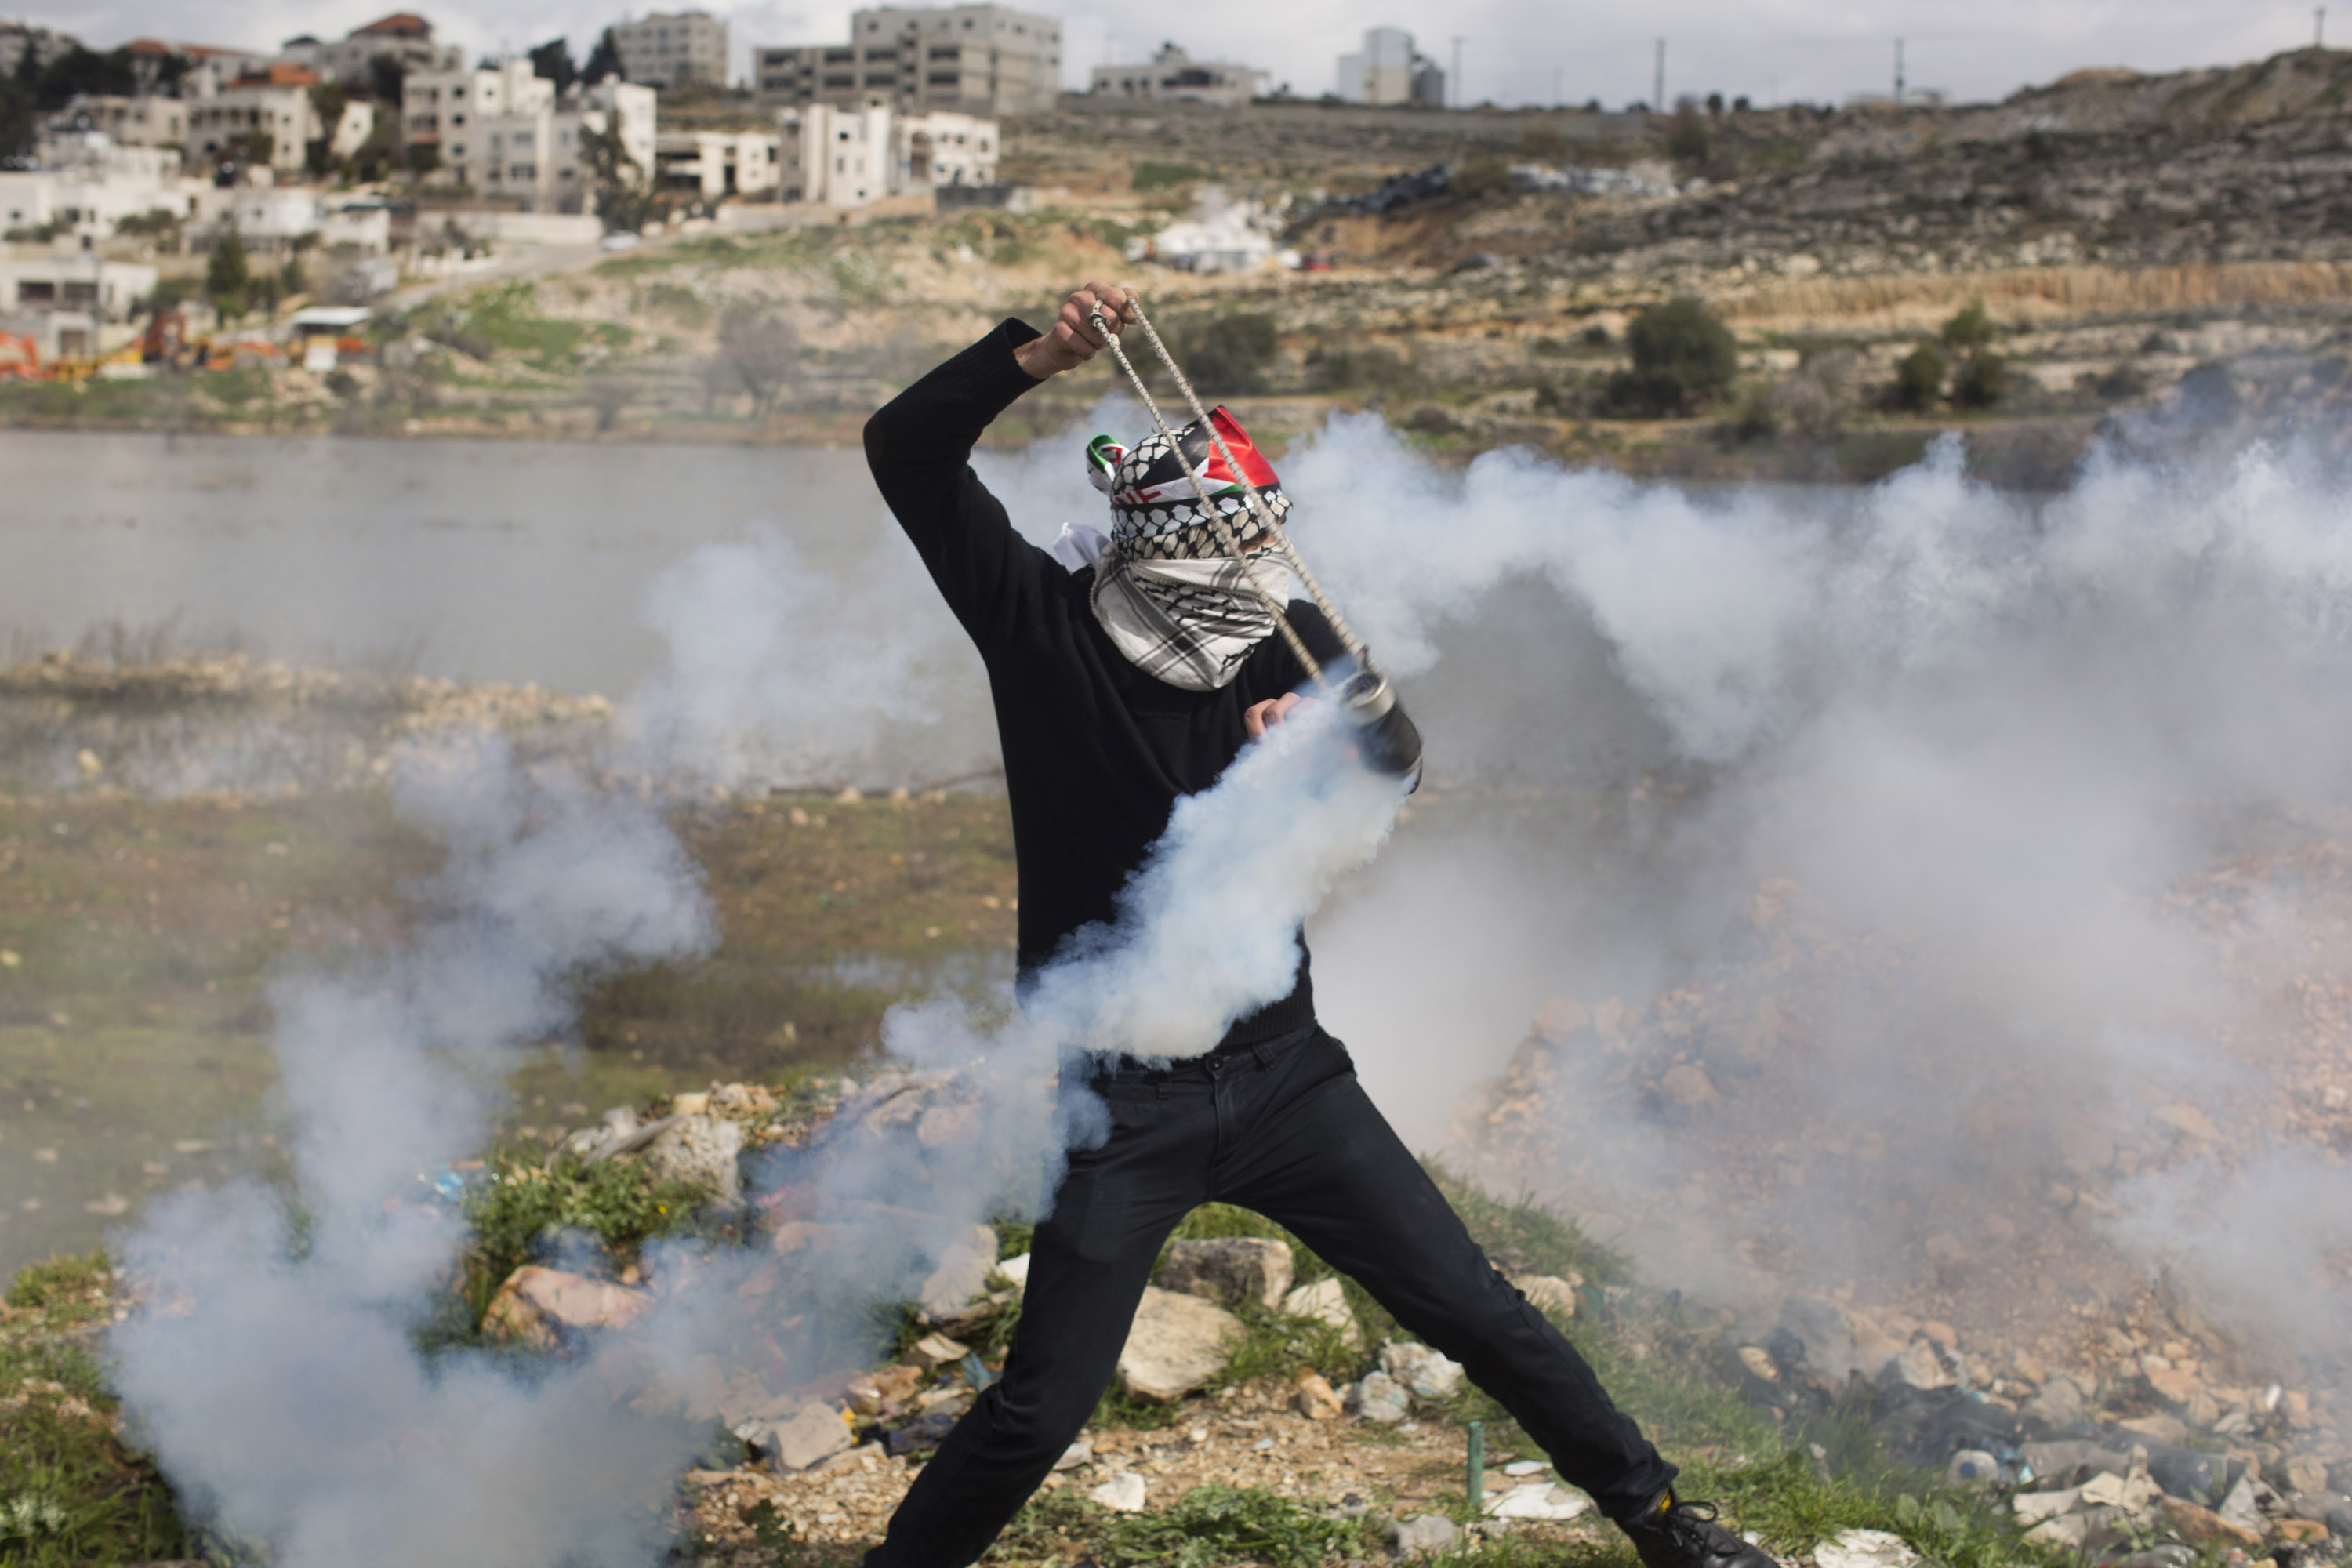 A Palestinian youth used his sling shot to throw back a tear gas canister fired by the Israeli army during a solidarity protest for prisoners, at Ofer military prison in Bituniya, West Bank, February 19, 2013. (Photo by Oren Ziv/GroundTruth)